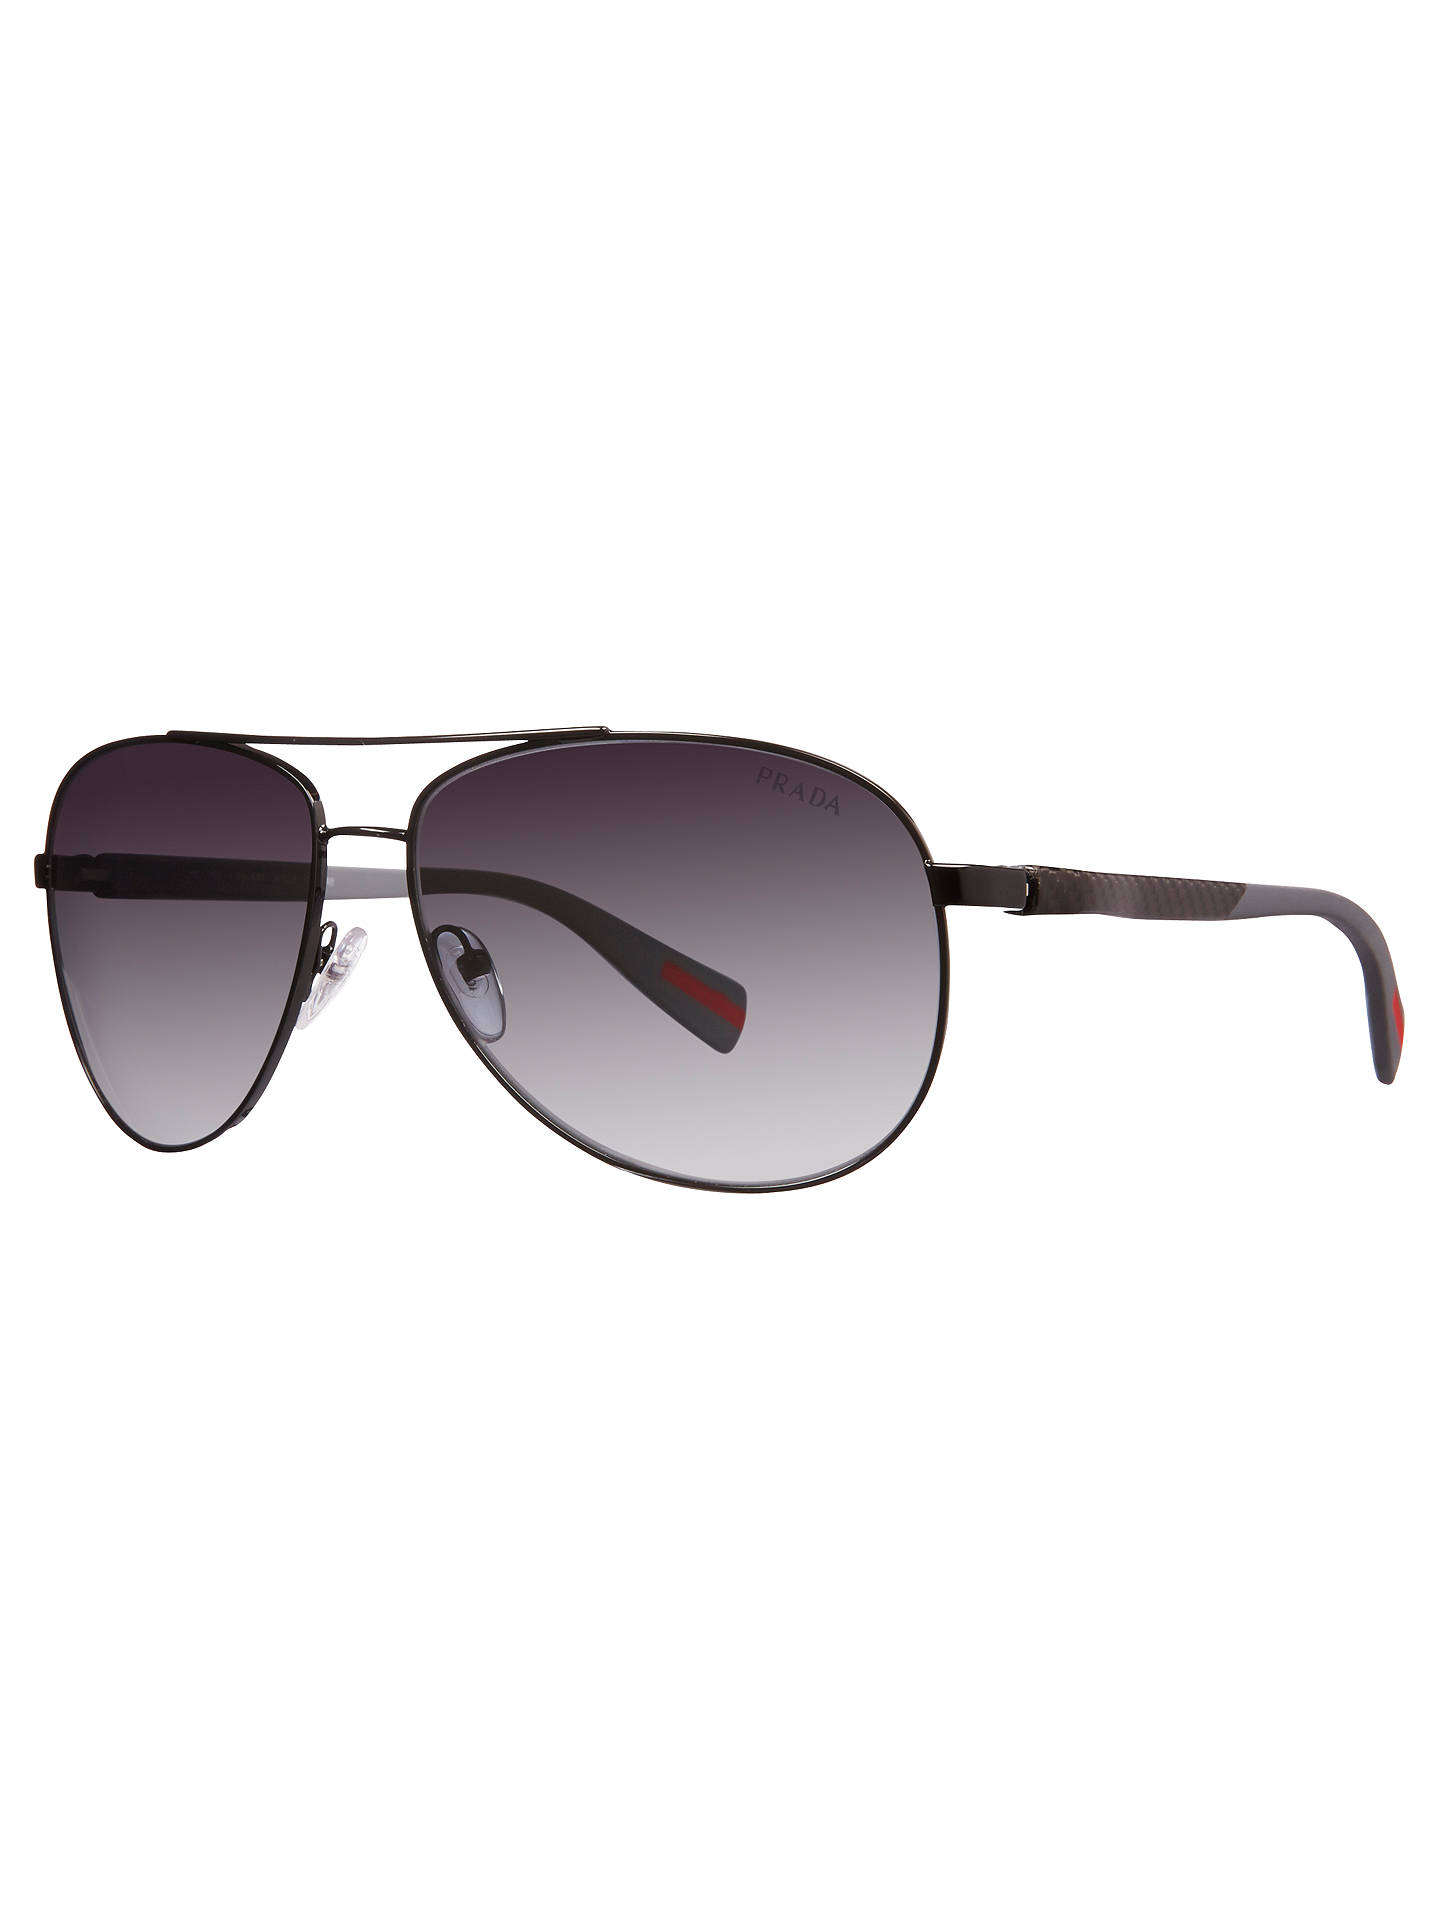 903bfea8fcf5 Buy Prada Linea Rossa PS51OS Polarised Aviator Sunglasses